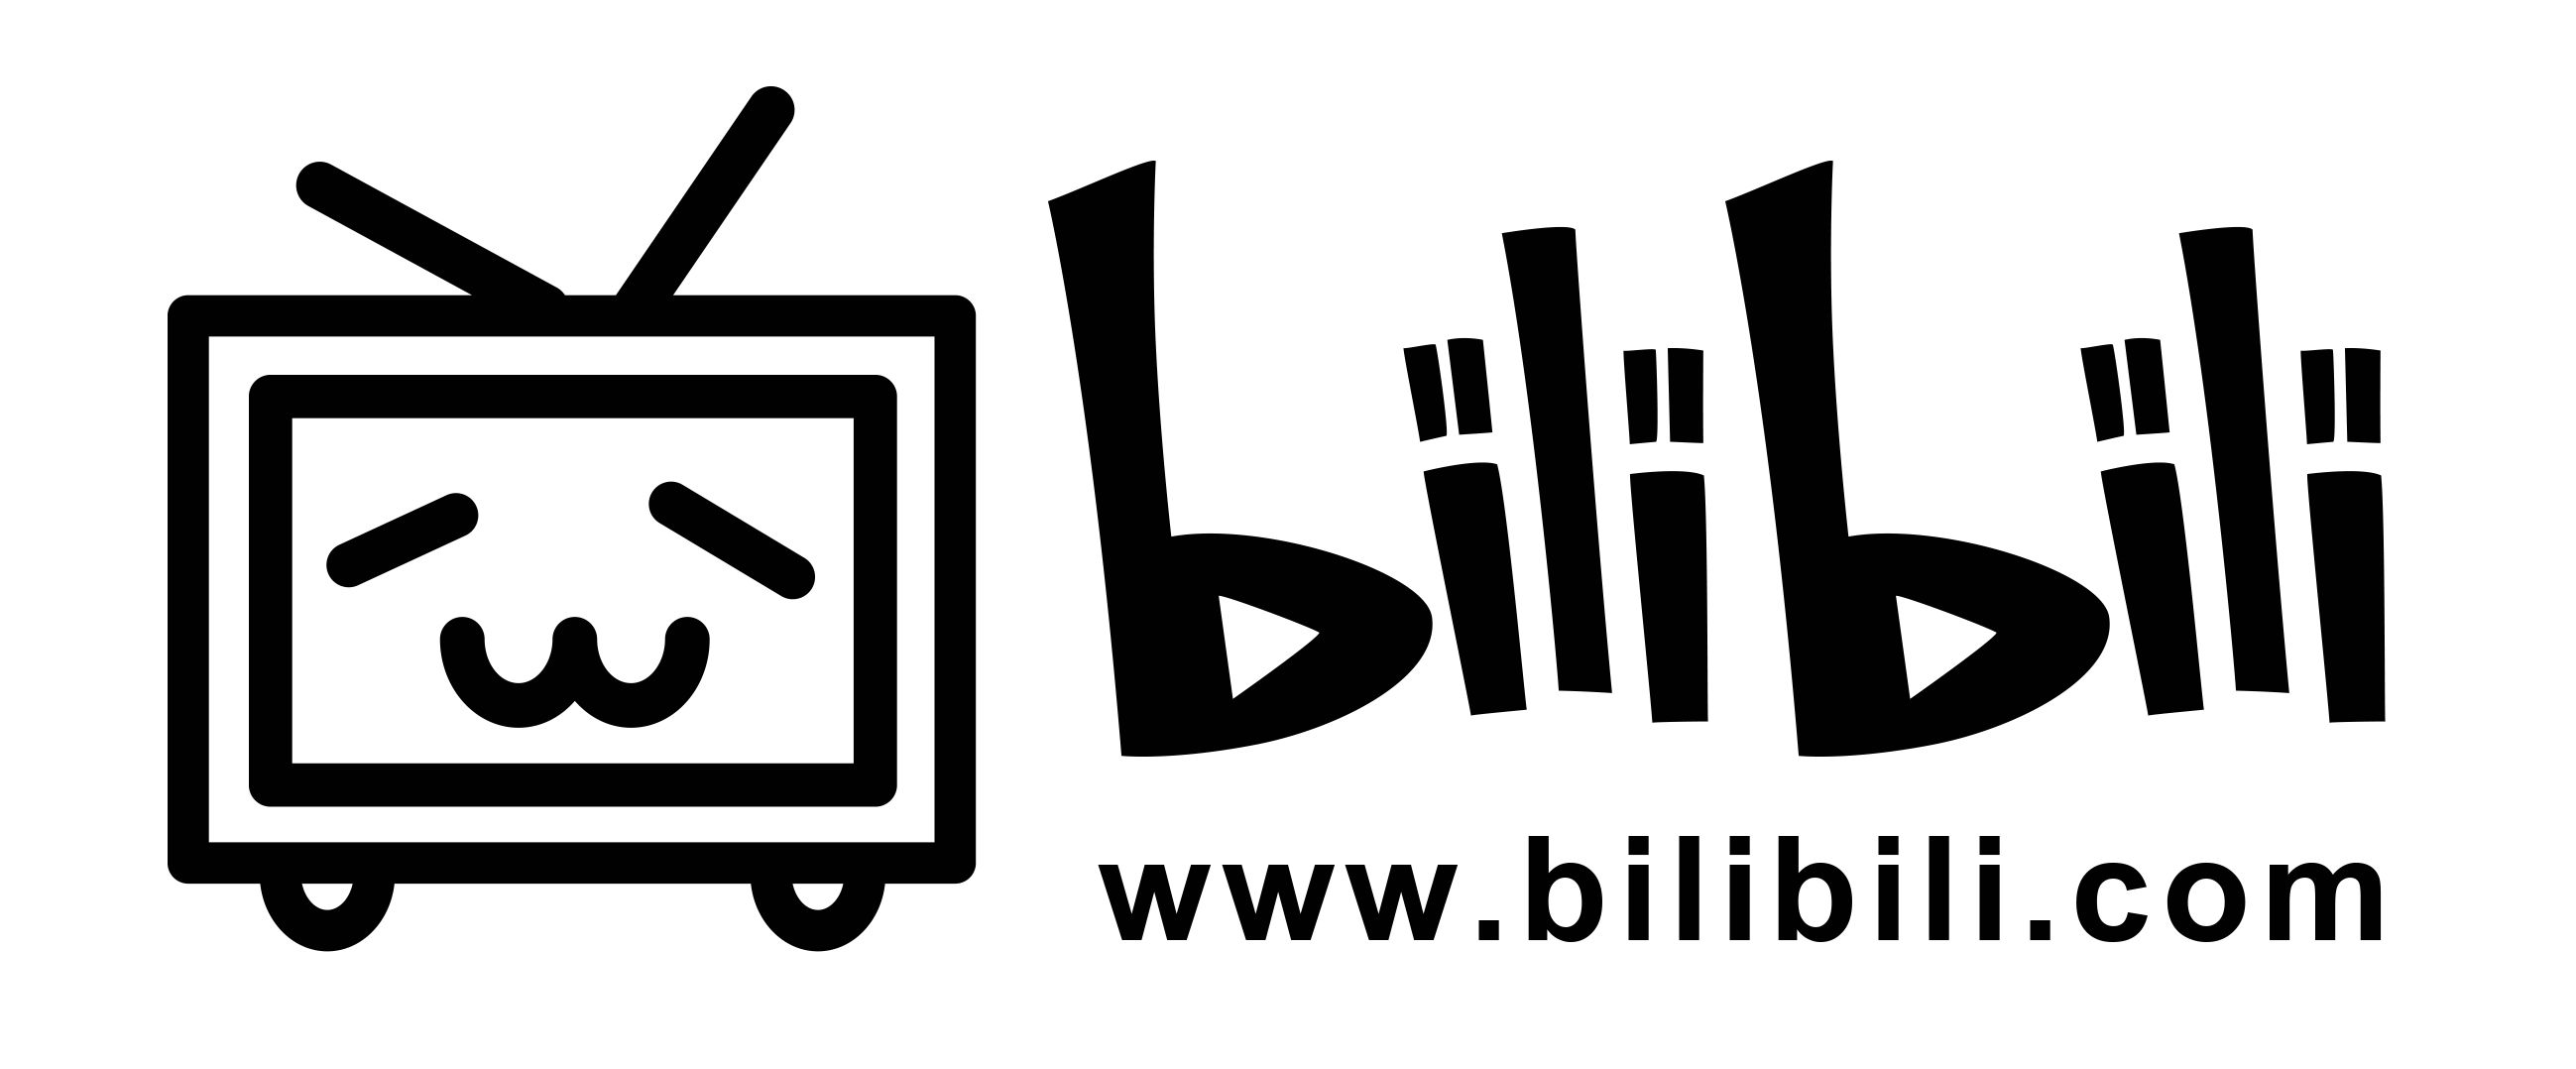 Bilibili, China's YouTube traded in US, reportedly considers Hong Kong listing-CnTechPost